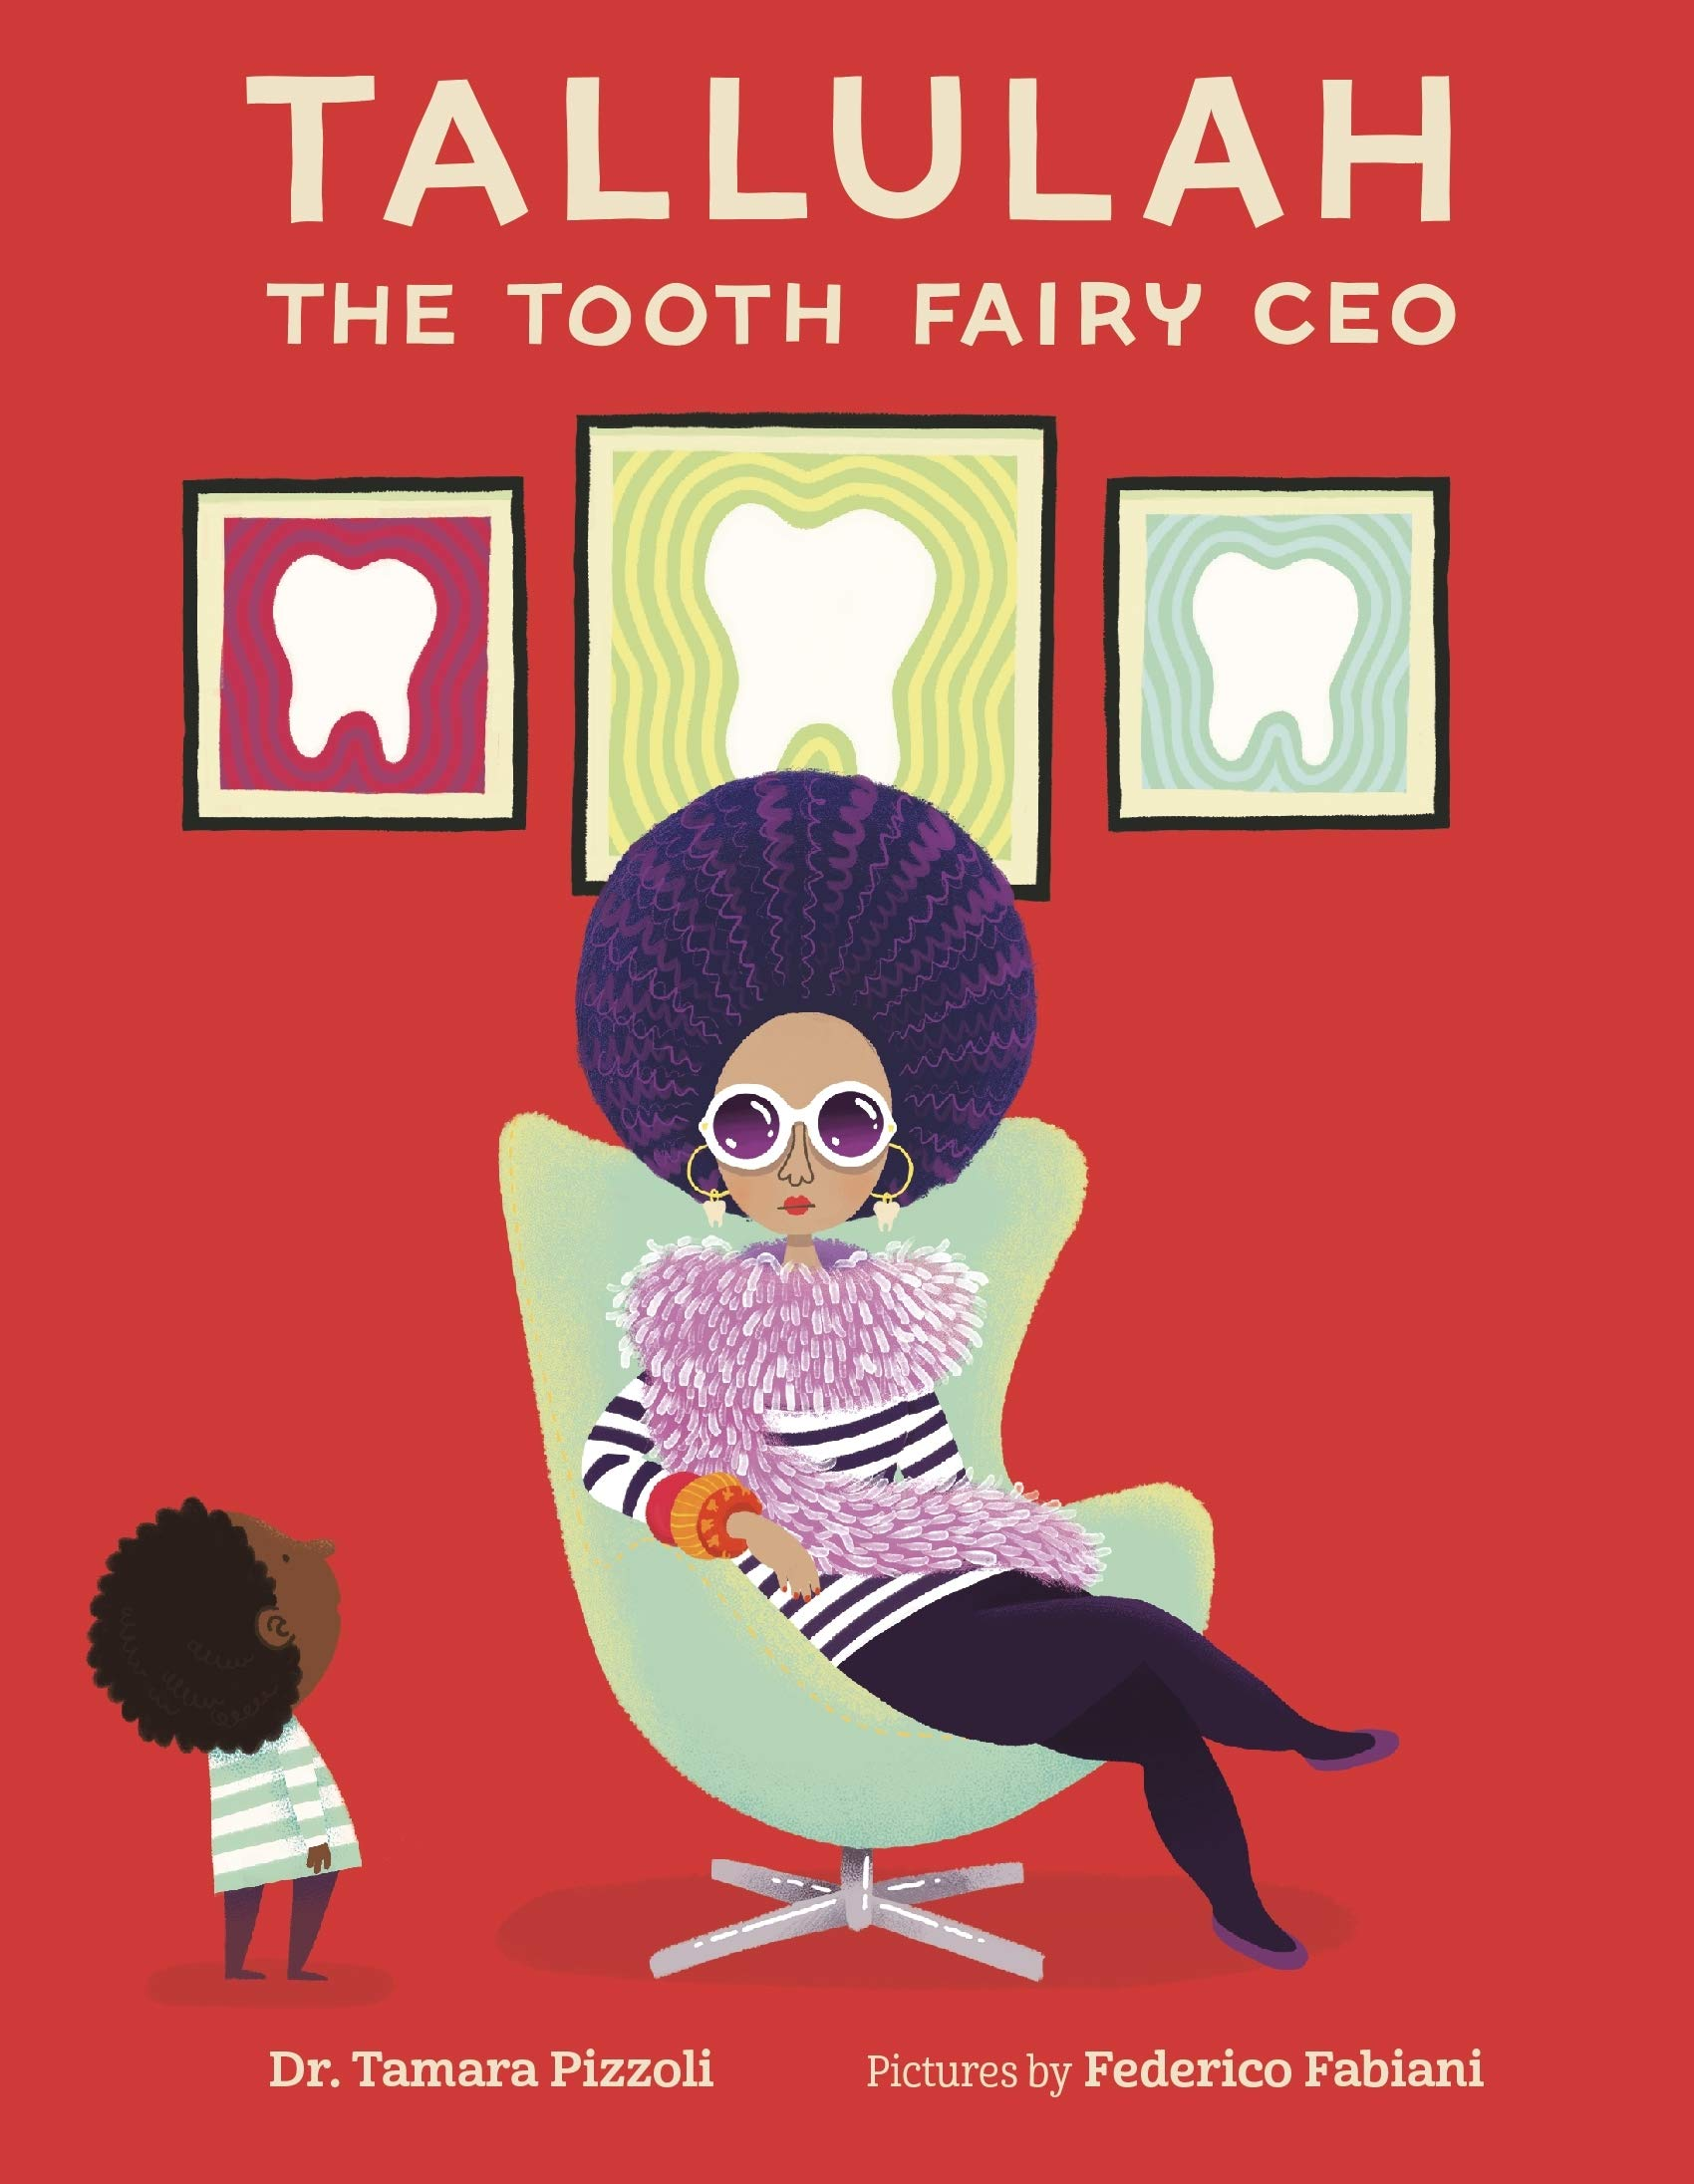 Tallulah The Tooth Fairy CEO cover